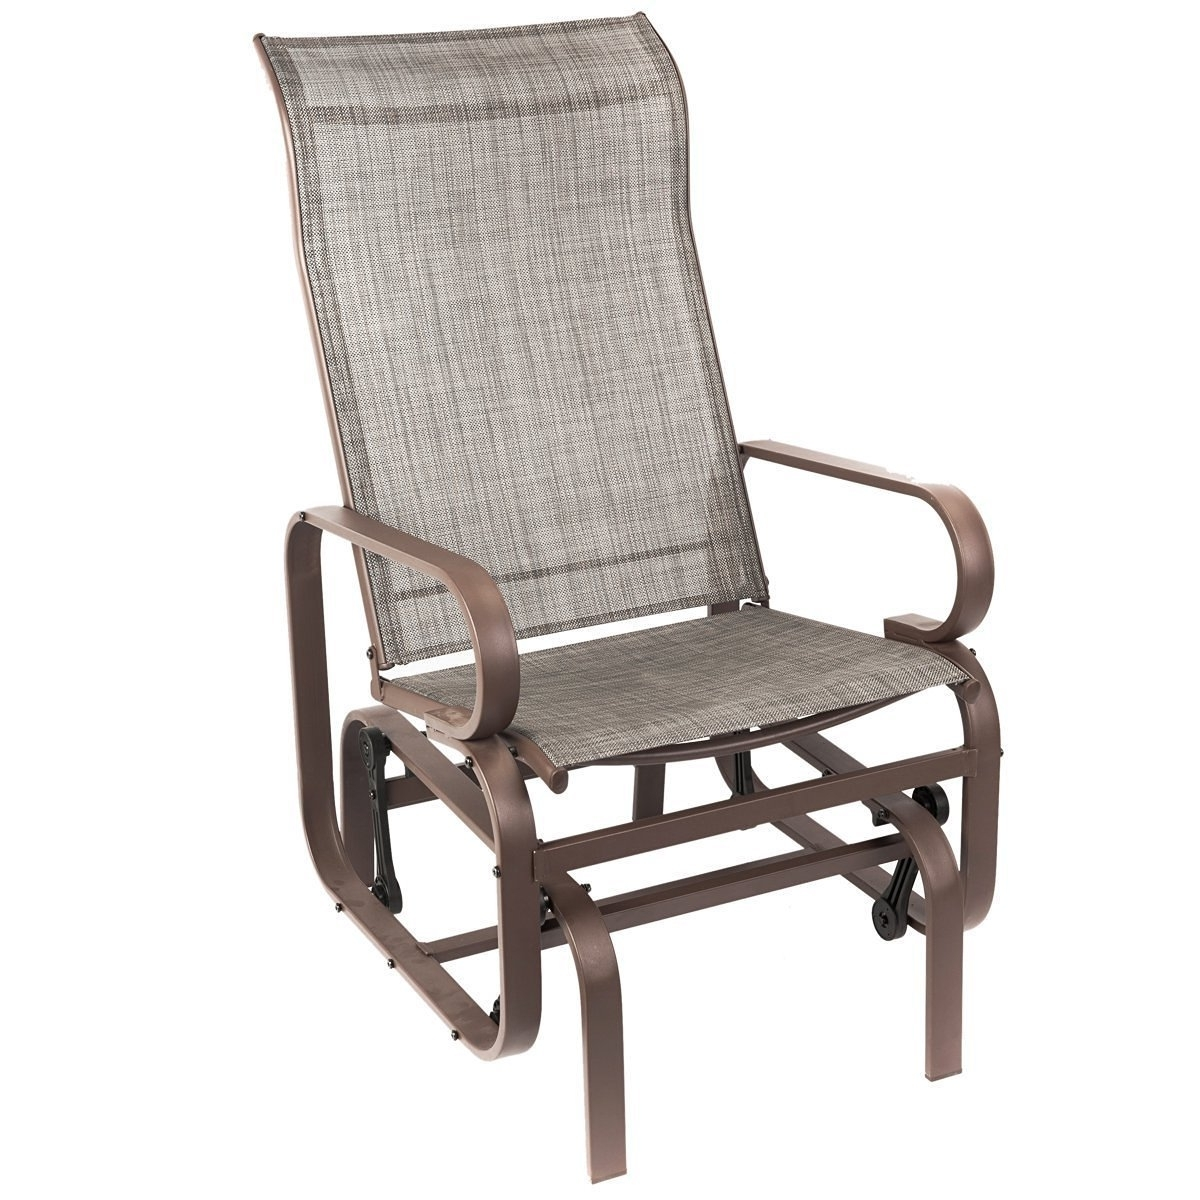 Famous Outdoor Furniture Rocking Chair – Outdoor Designs Pertaining To Patio Furniture Rocking Benches (View 2 of 15)